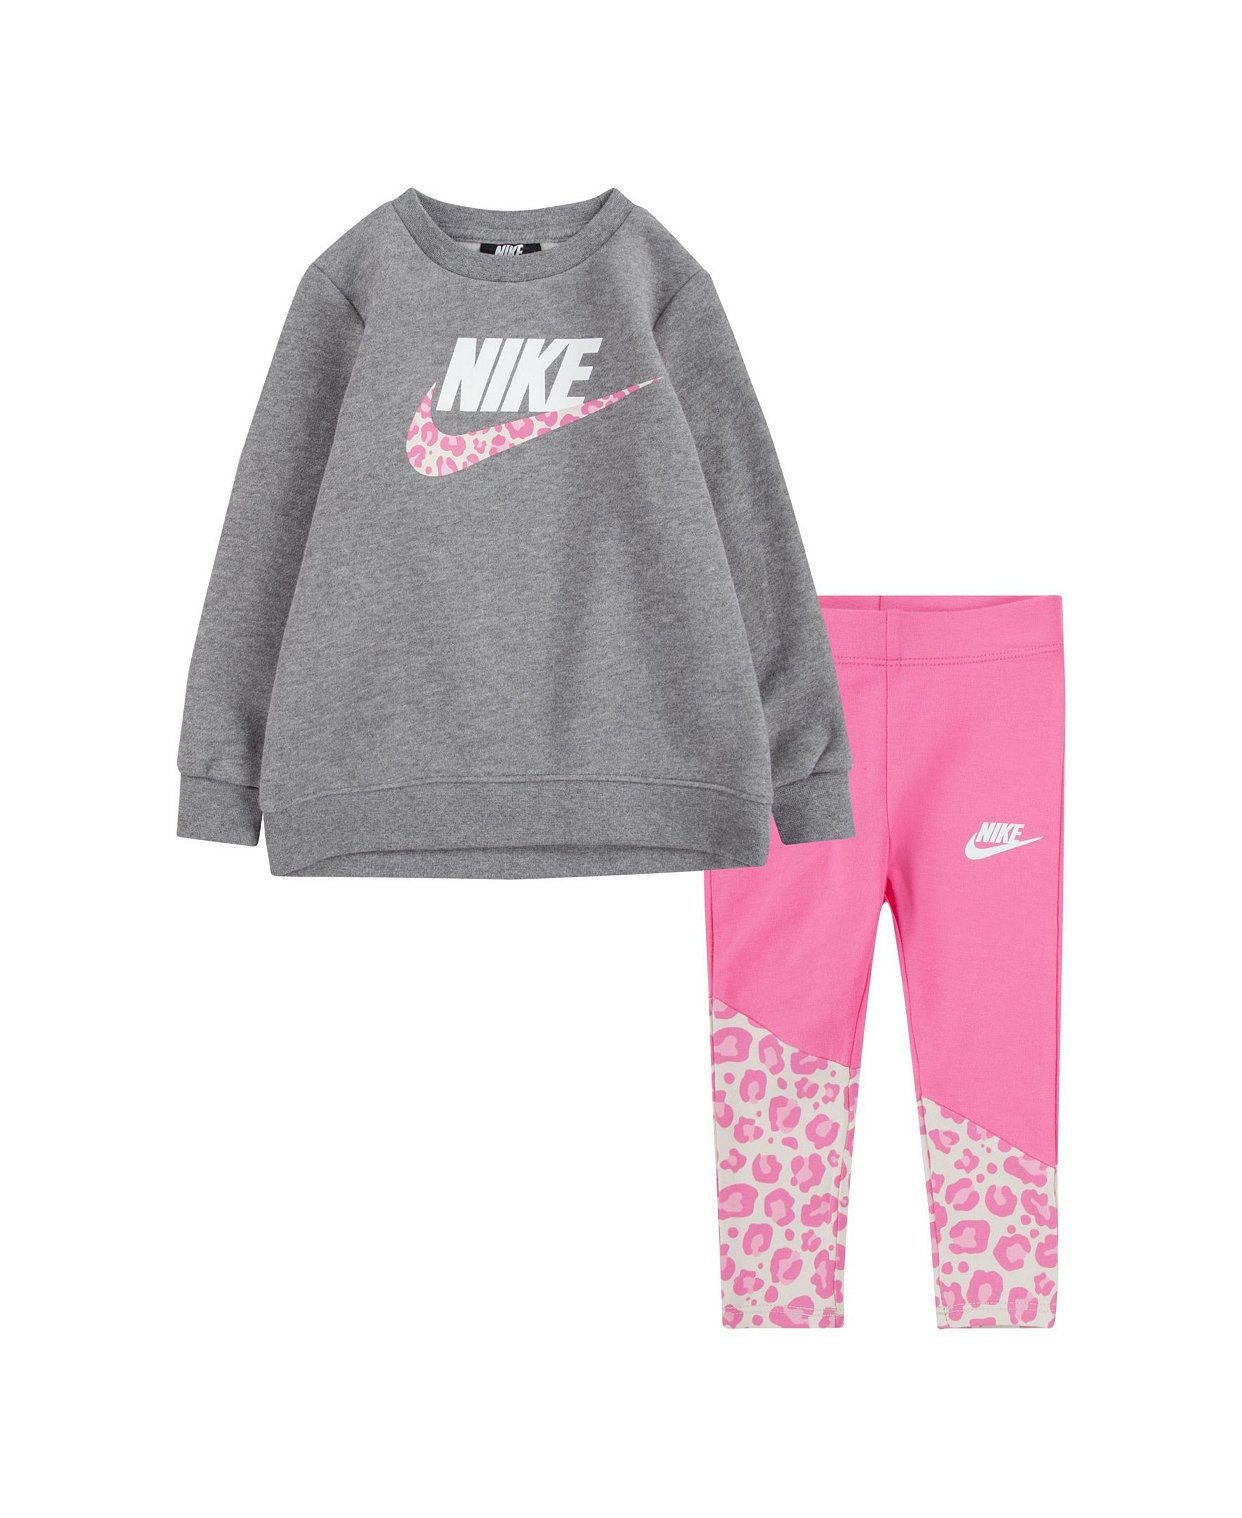 6M-12M-18M-2T Girls Infant 2 or 3 Piece Top /& Stretch Leggings